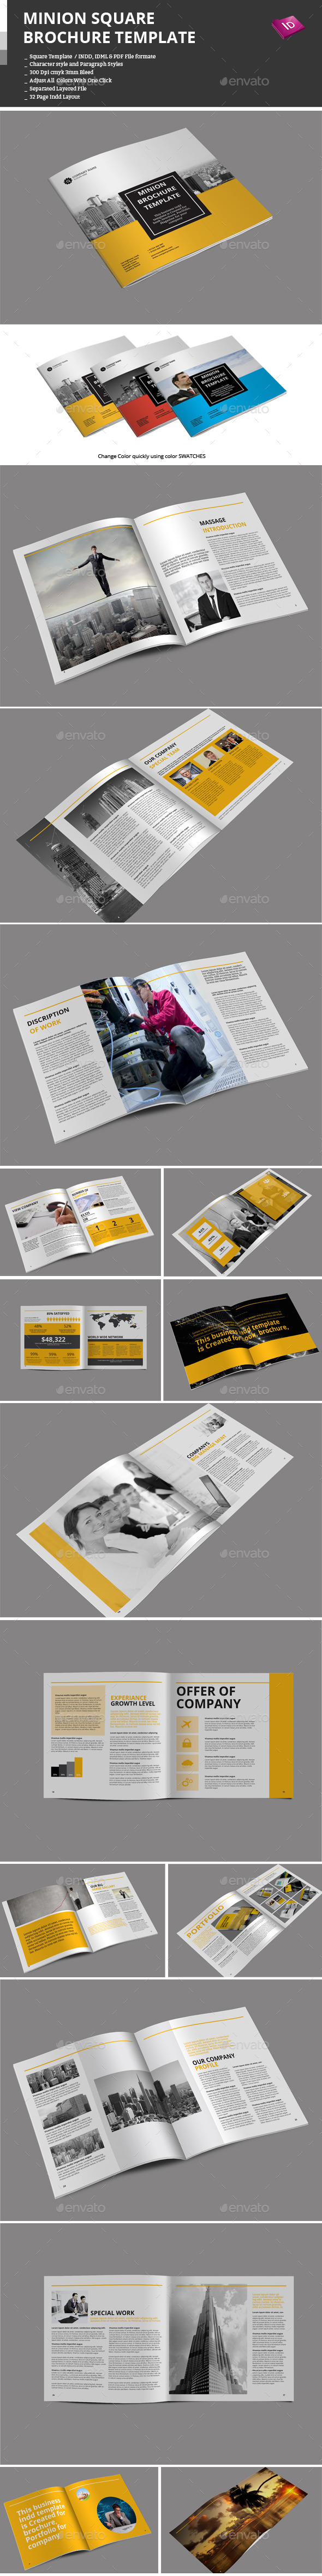 GraphicRiver Minion Square Brochure Templates 9160241